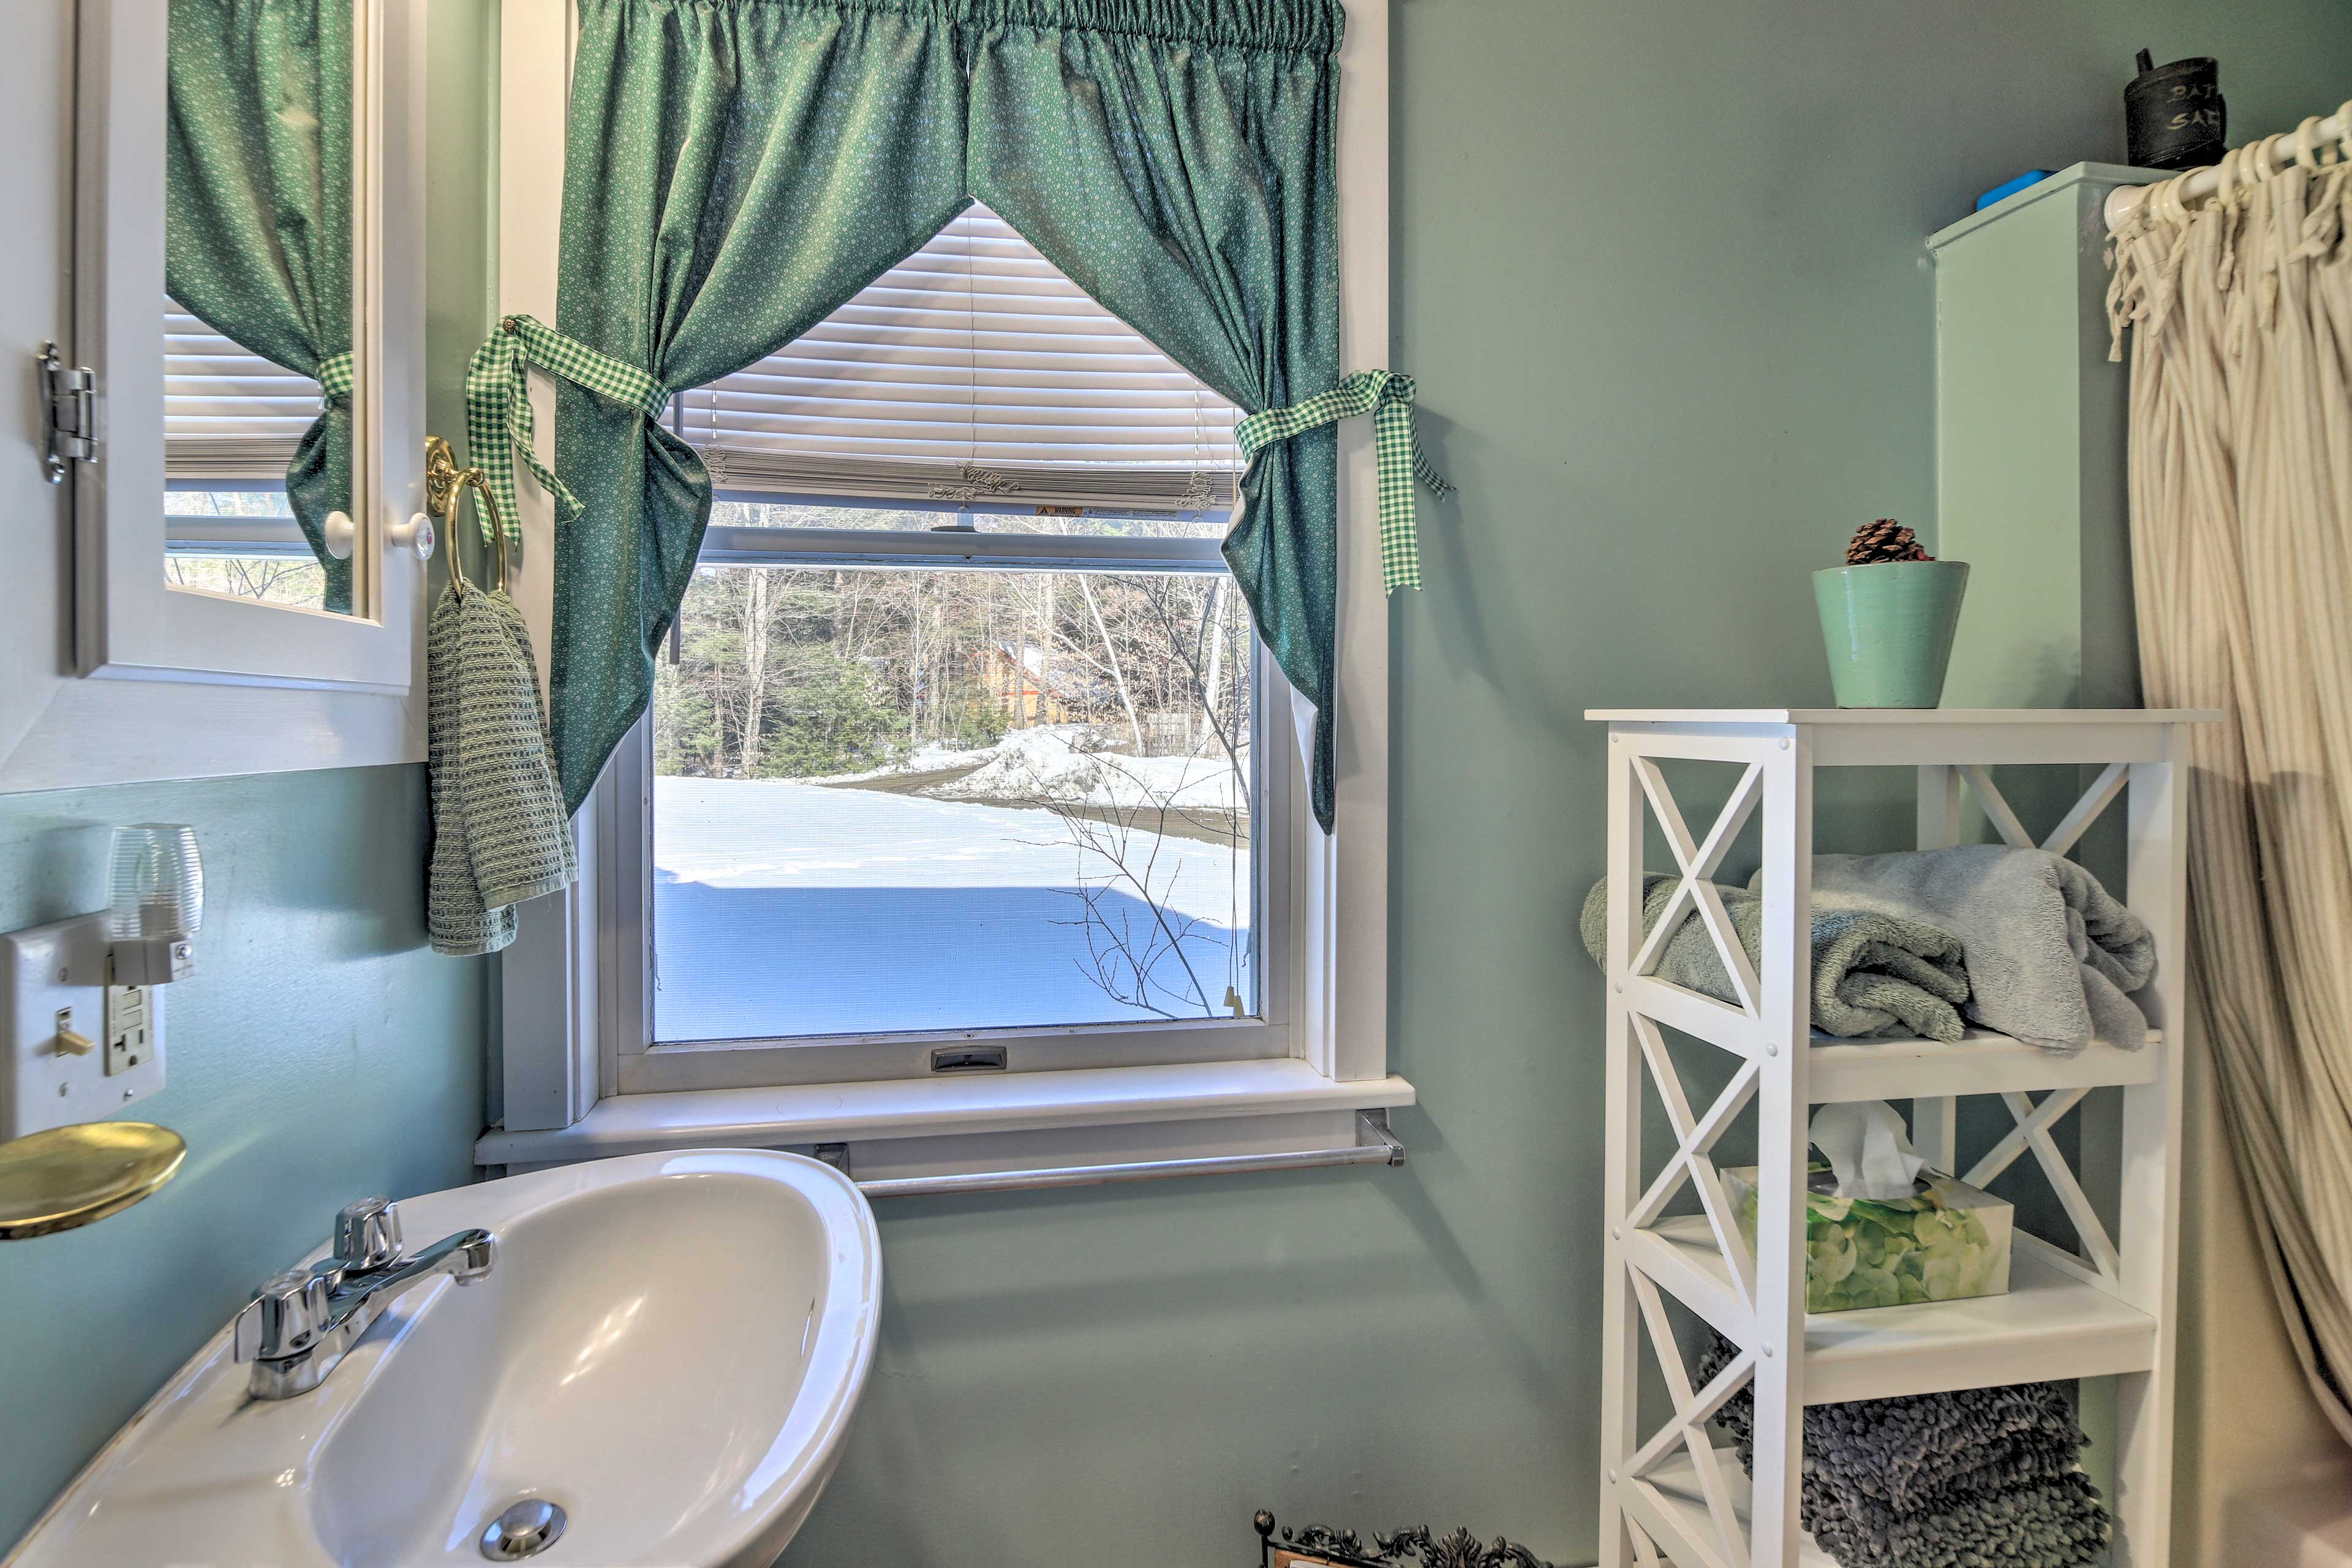 The full bathroom on the main floor features a shower/tub combo.